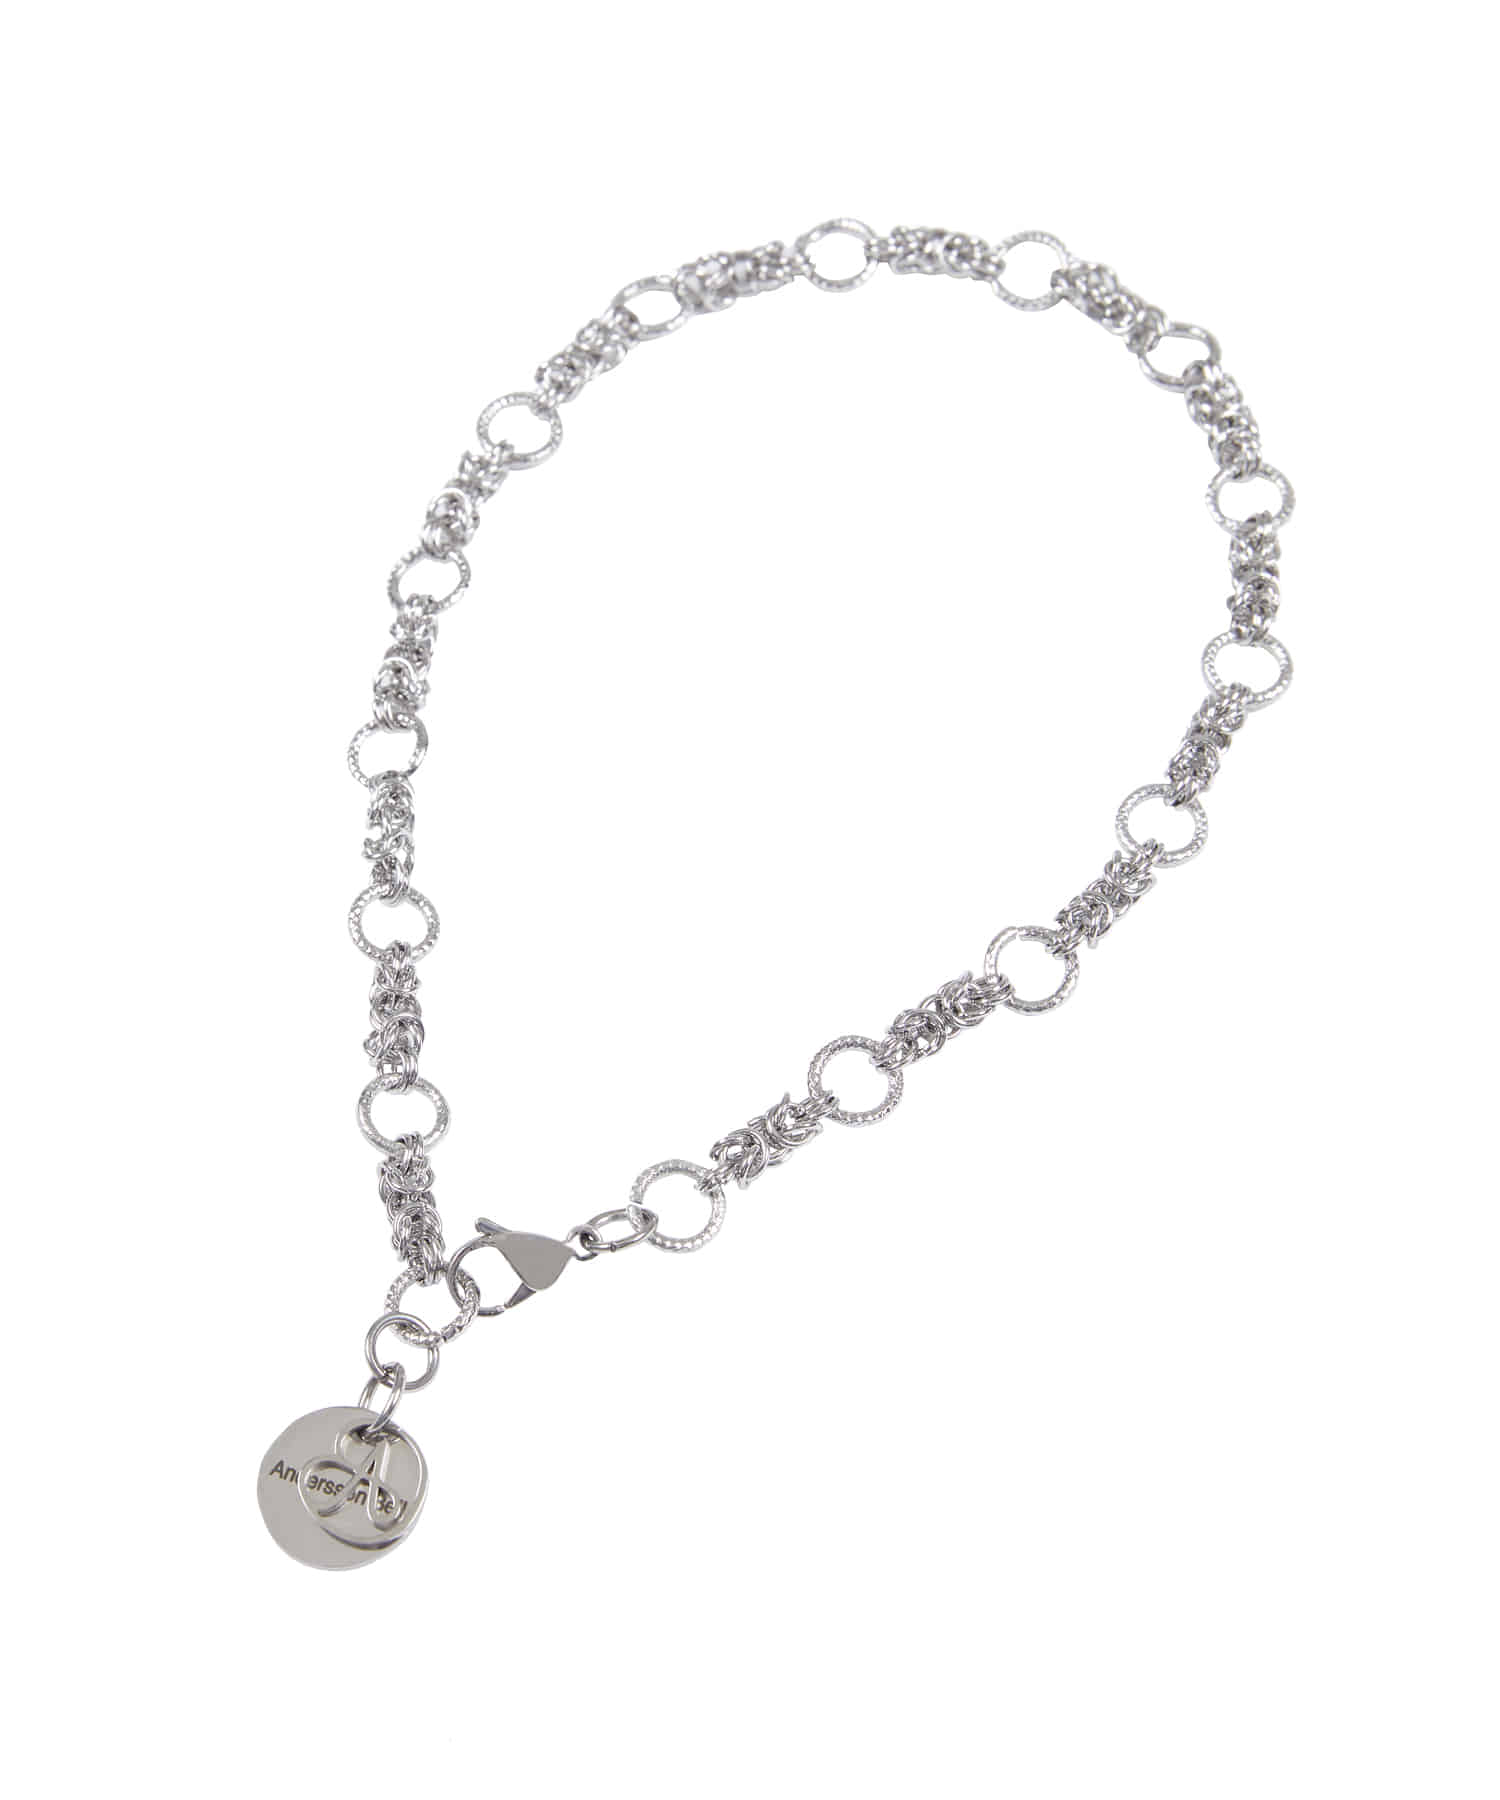 Anderssonbell앤더슨벨 UNISEX DOUBLE RING CHAIN NECKLACE aaa253u(SILVER)